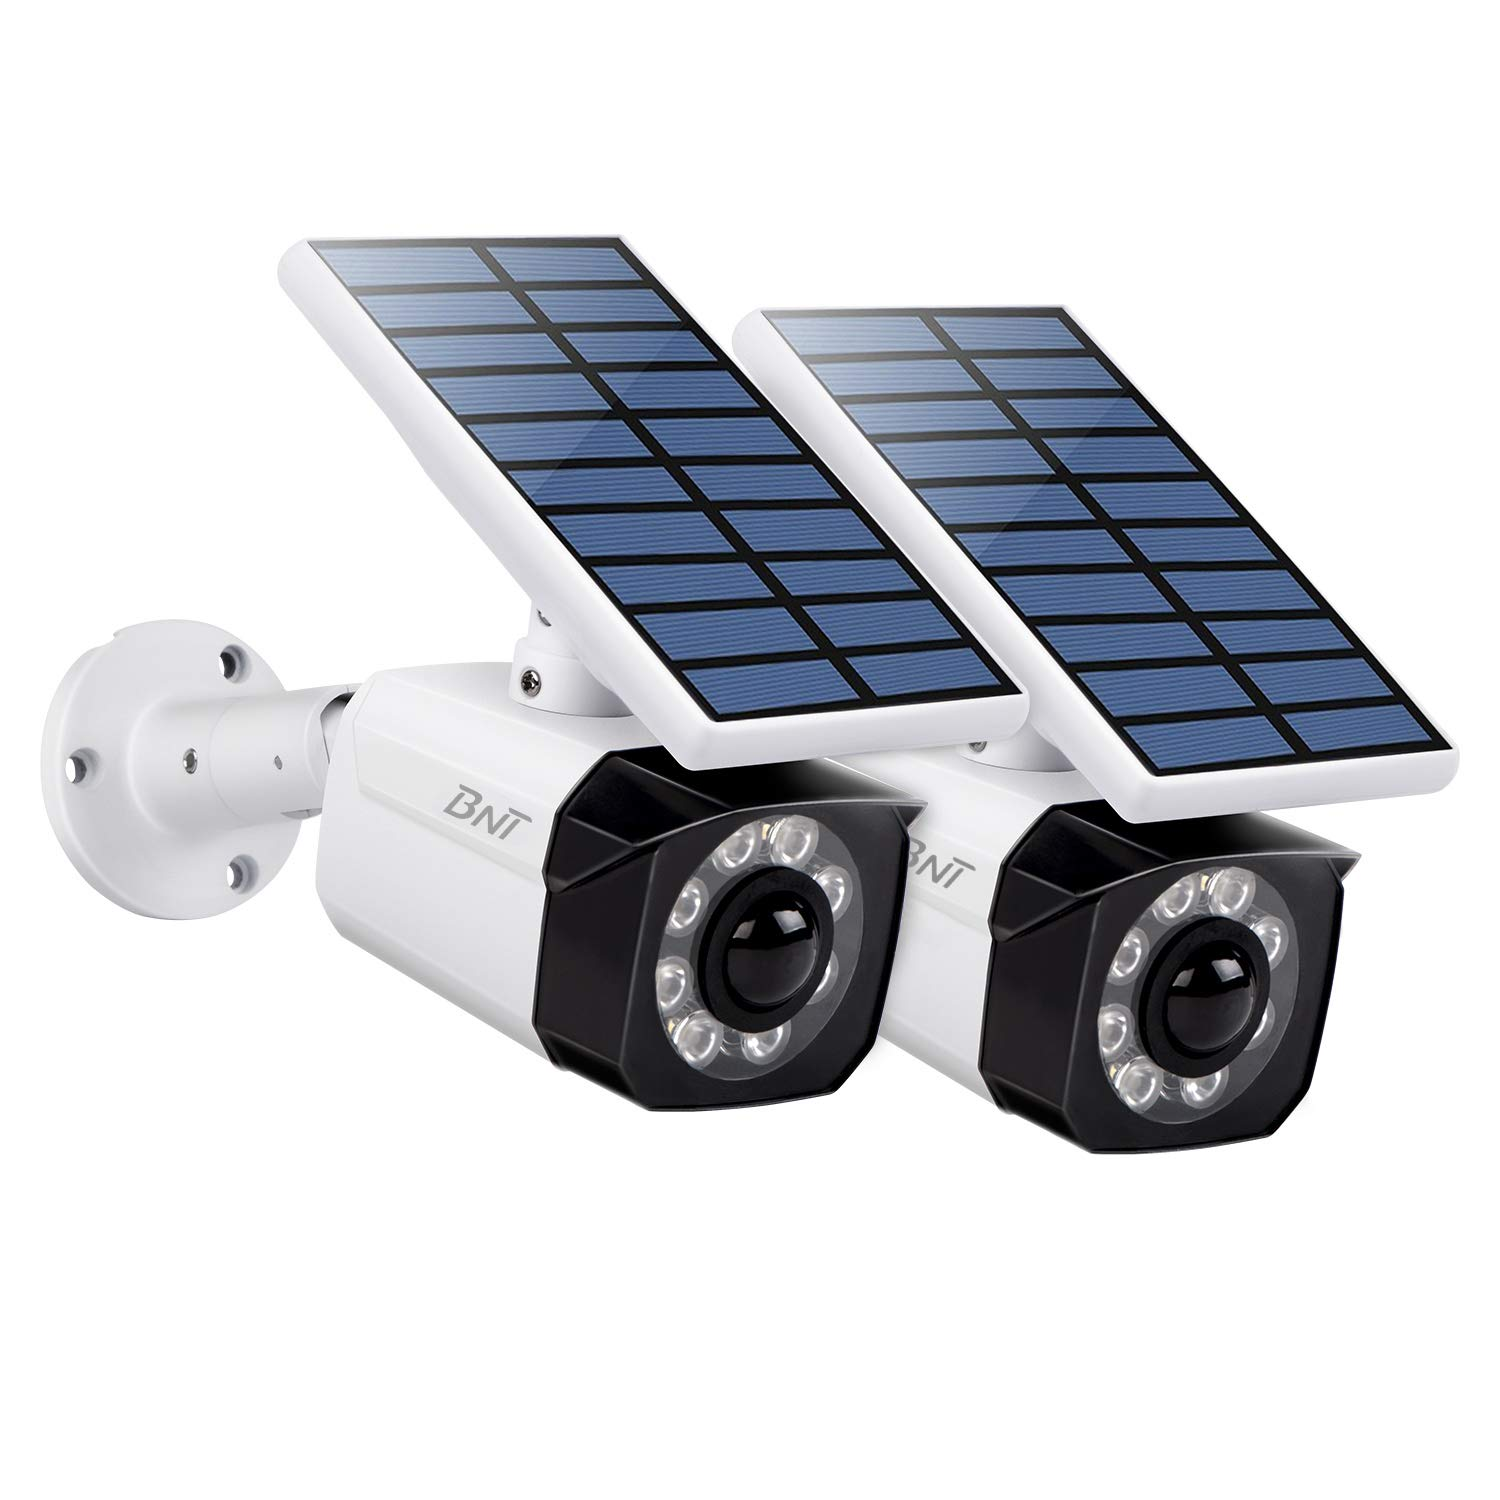 Solar Lights Outdoor Motion Sensor, 800Lumens 8 LED Wireless Motion Sensor Light, IP66 Waterproof Solar Lights Outdoor for Yard Garden Driveway Fence (White, 2 Pack) by BNT